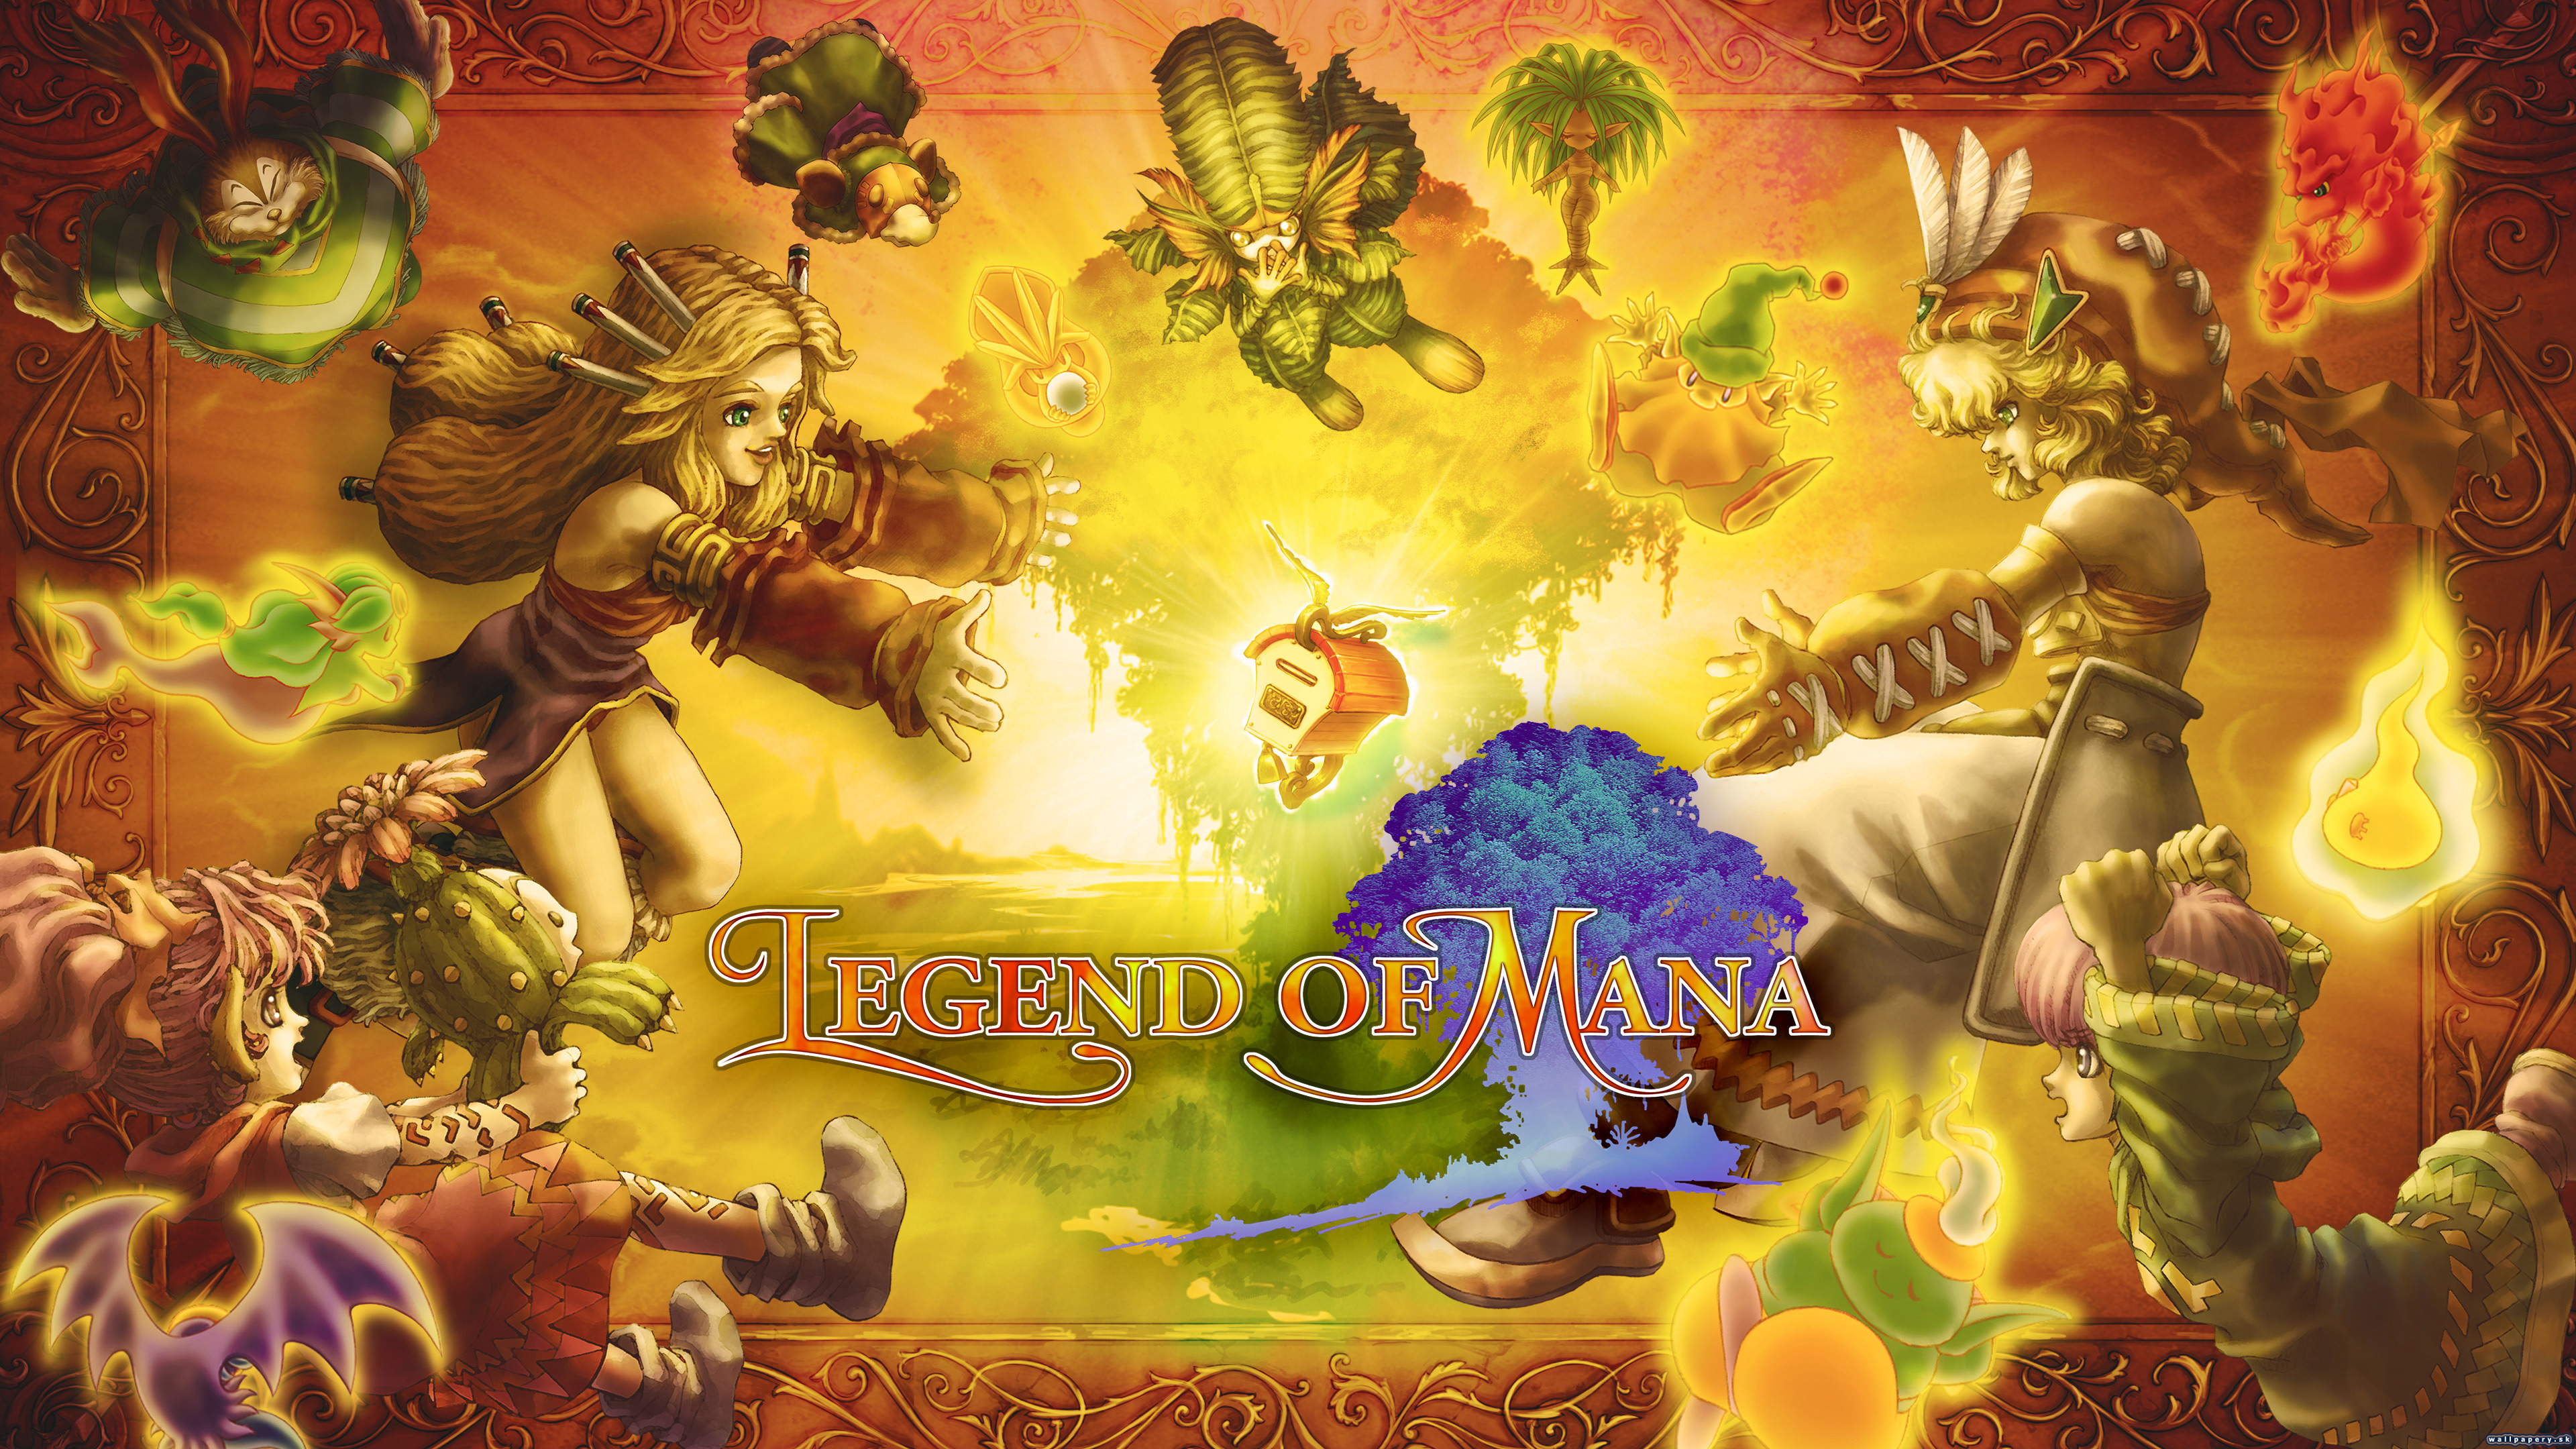 Legend of Mana - wallpaper 1